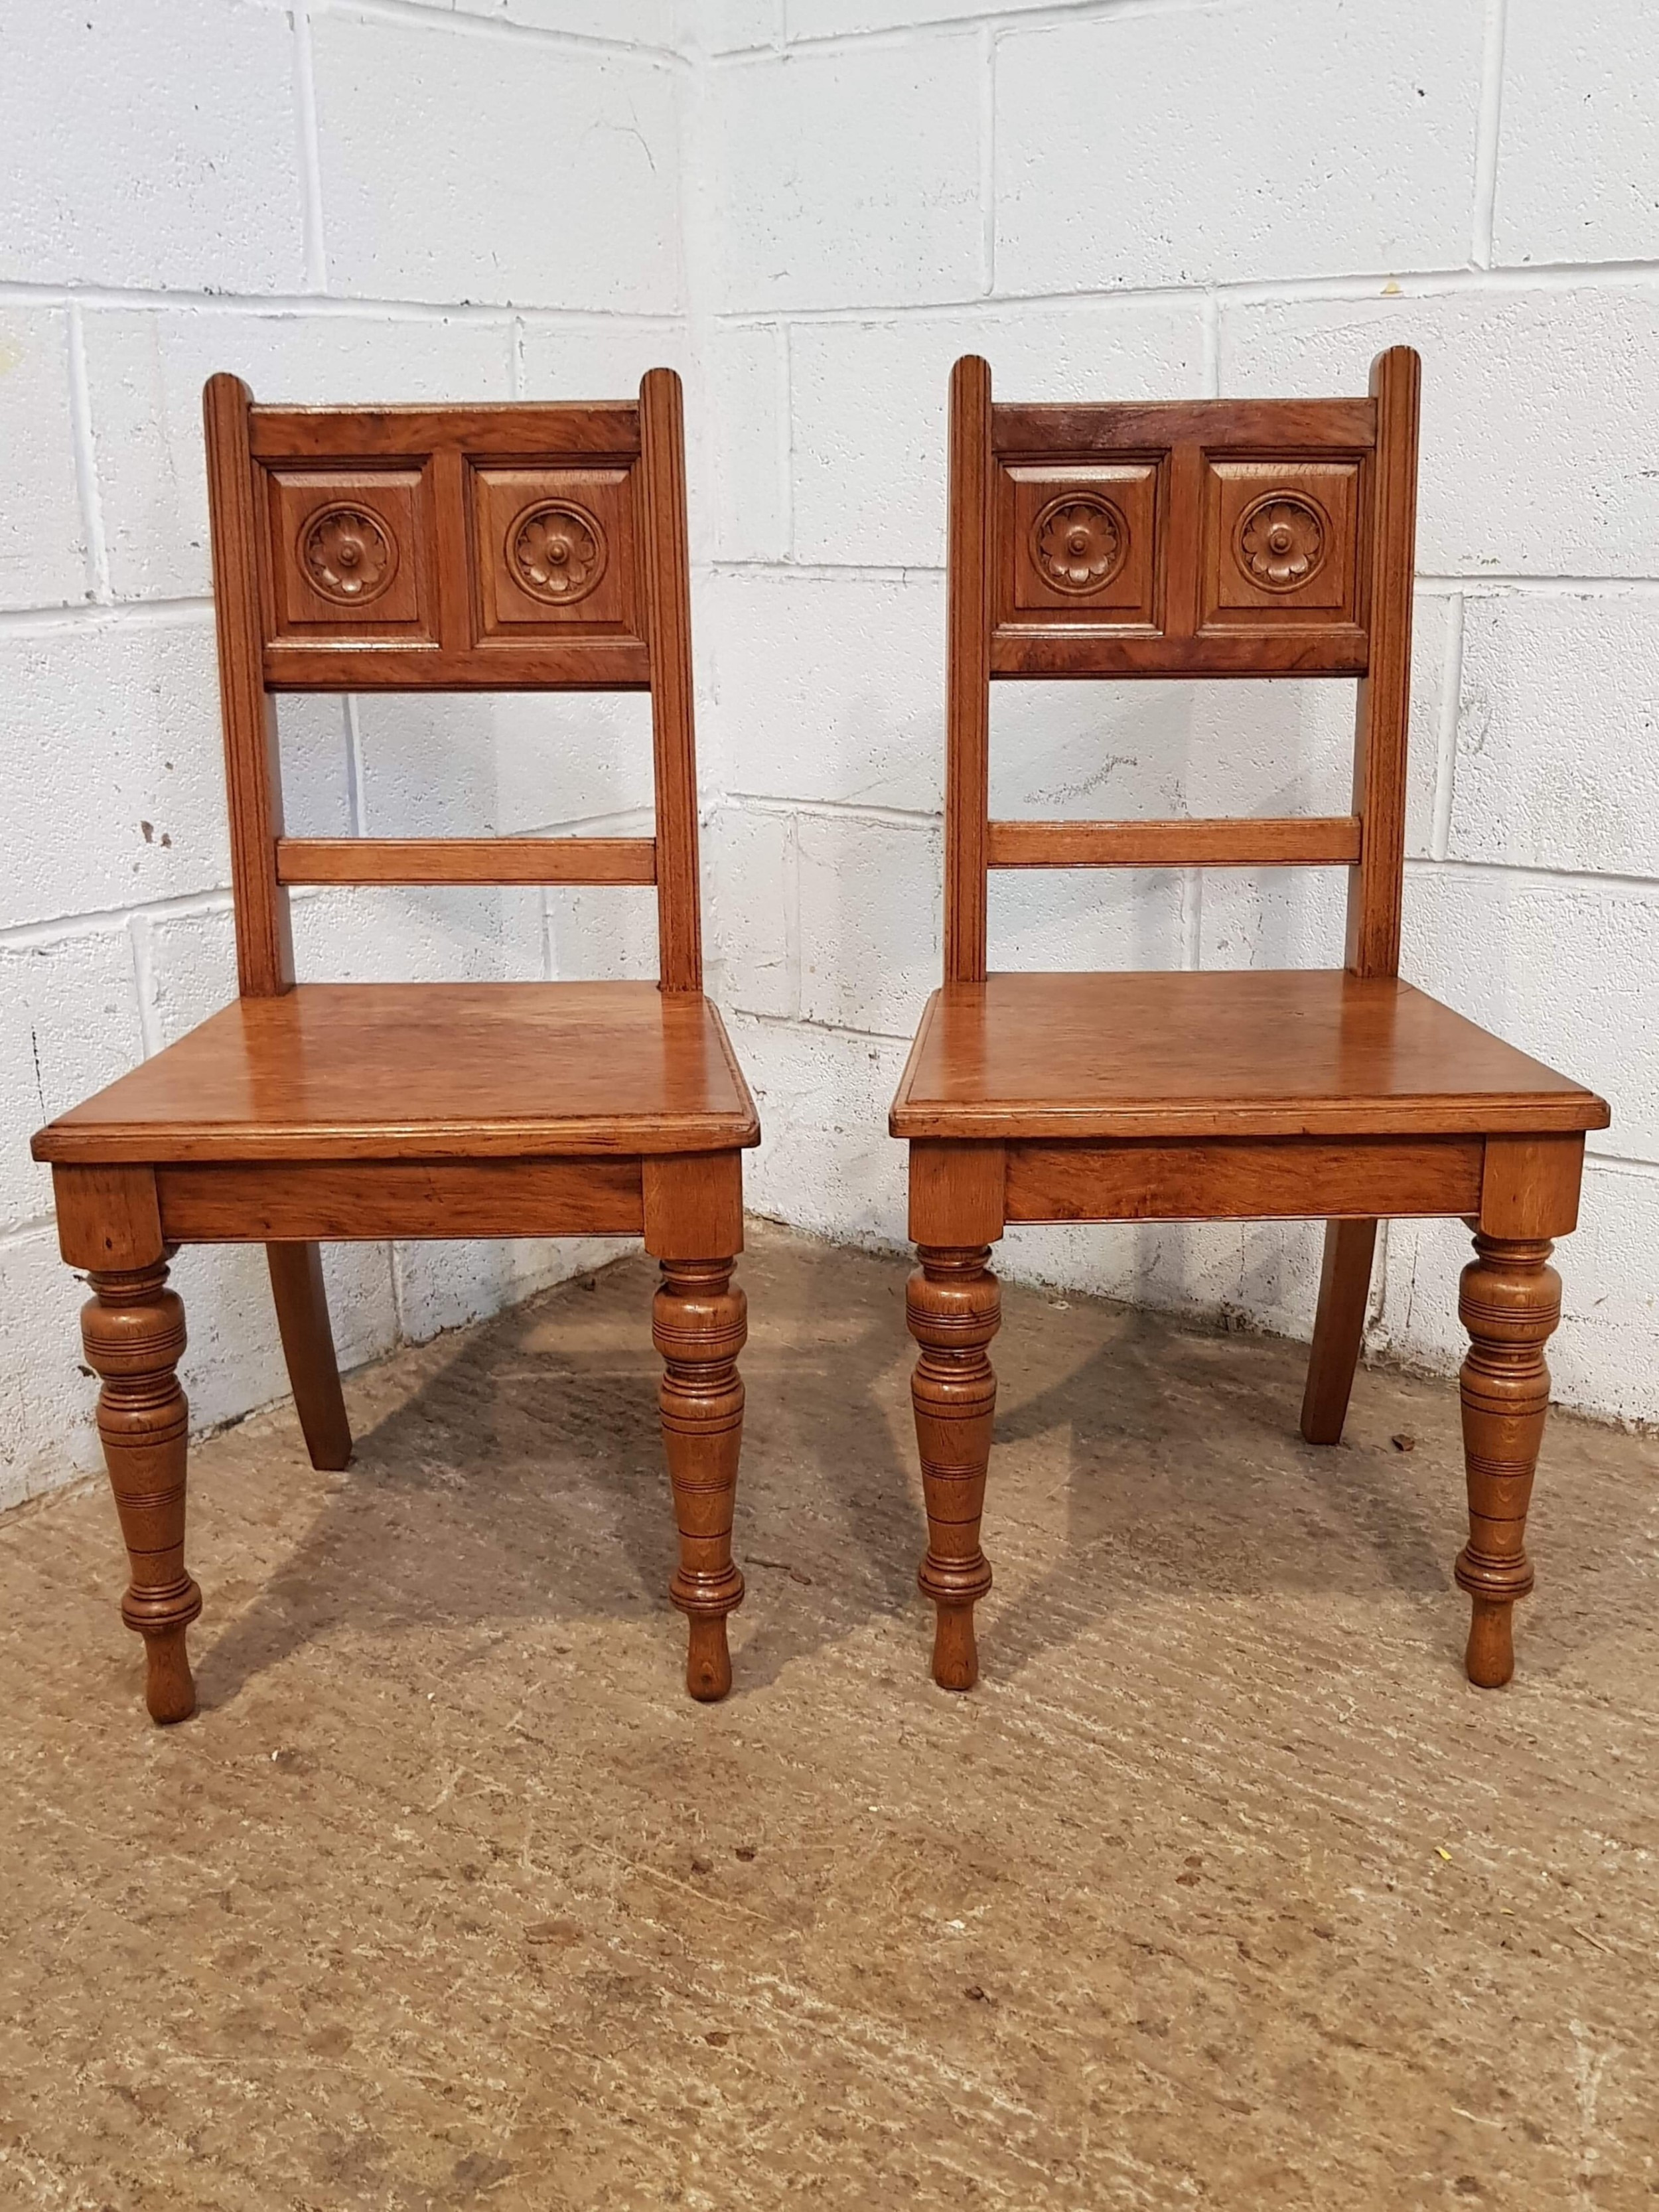 Antique Arts and Crafts Furniture Luxury Antique Pair Golden Oak Arts & Crafts Hall Chairs C1900